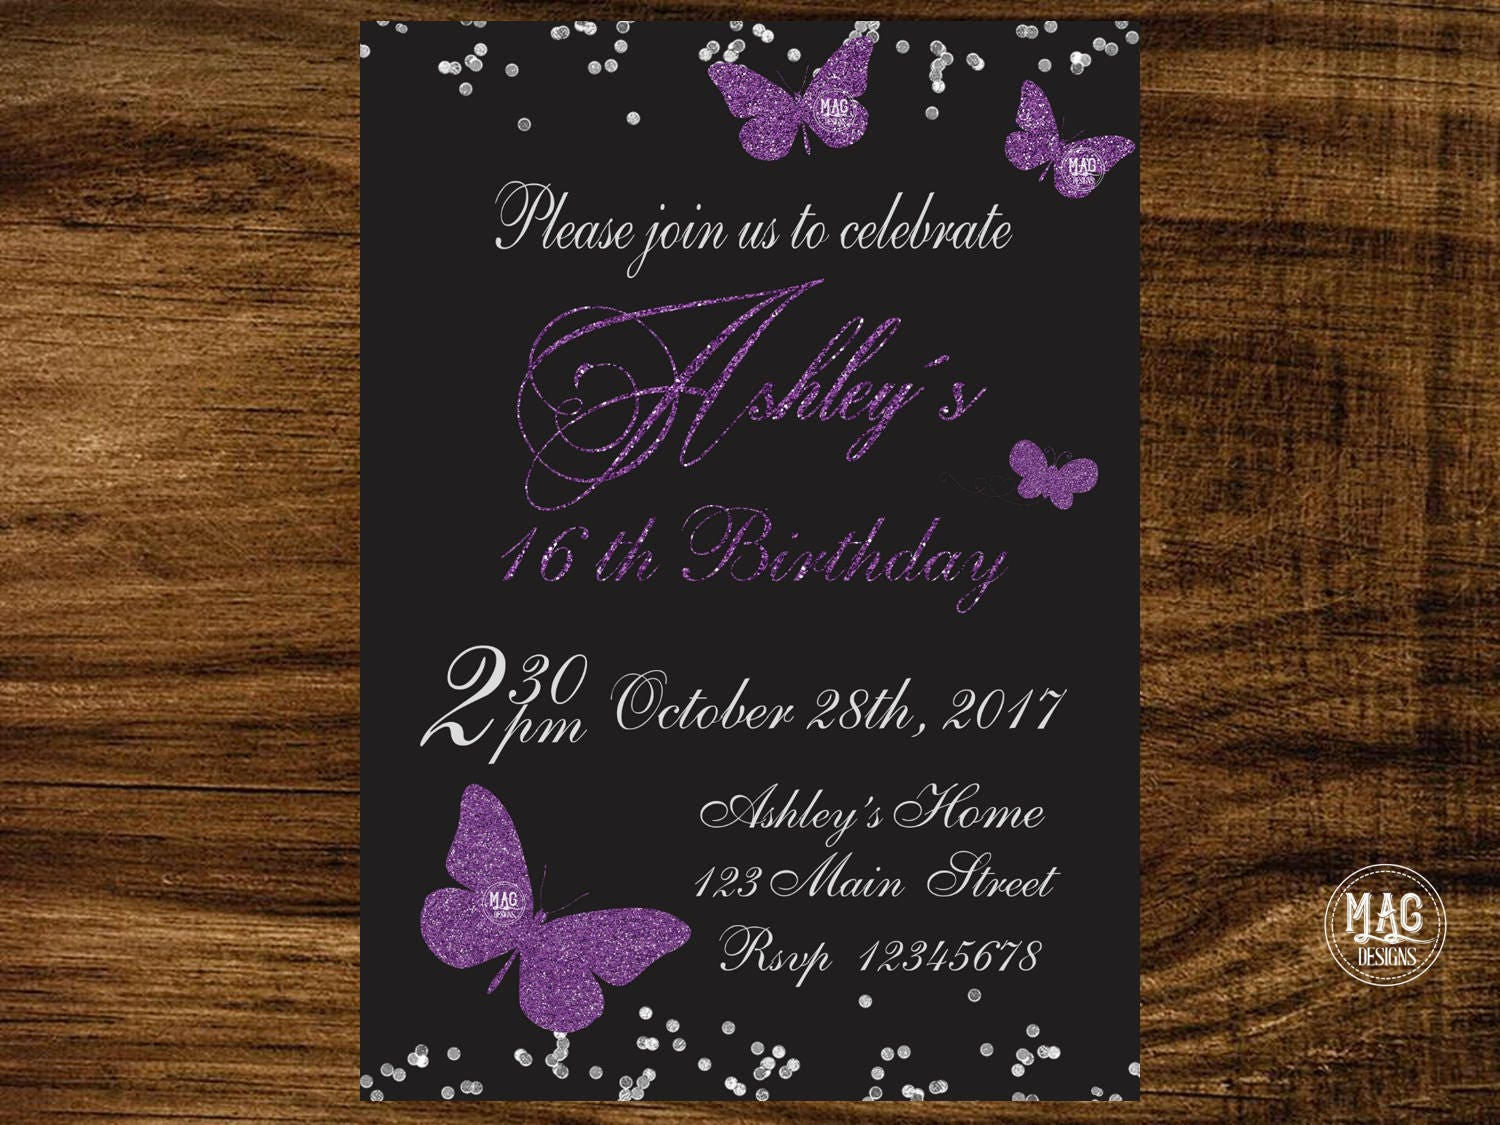 Butterfly birthday invitation, Butterfly invitations, Butterfly ...